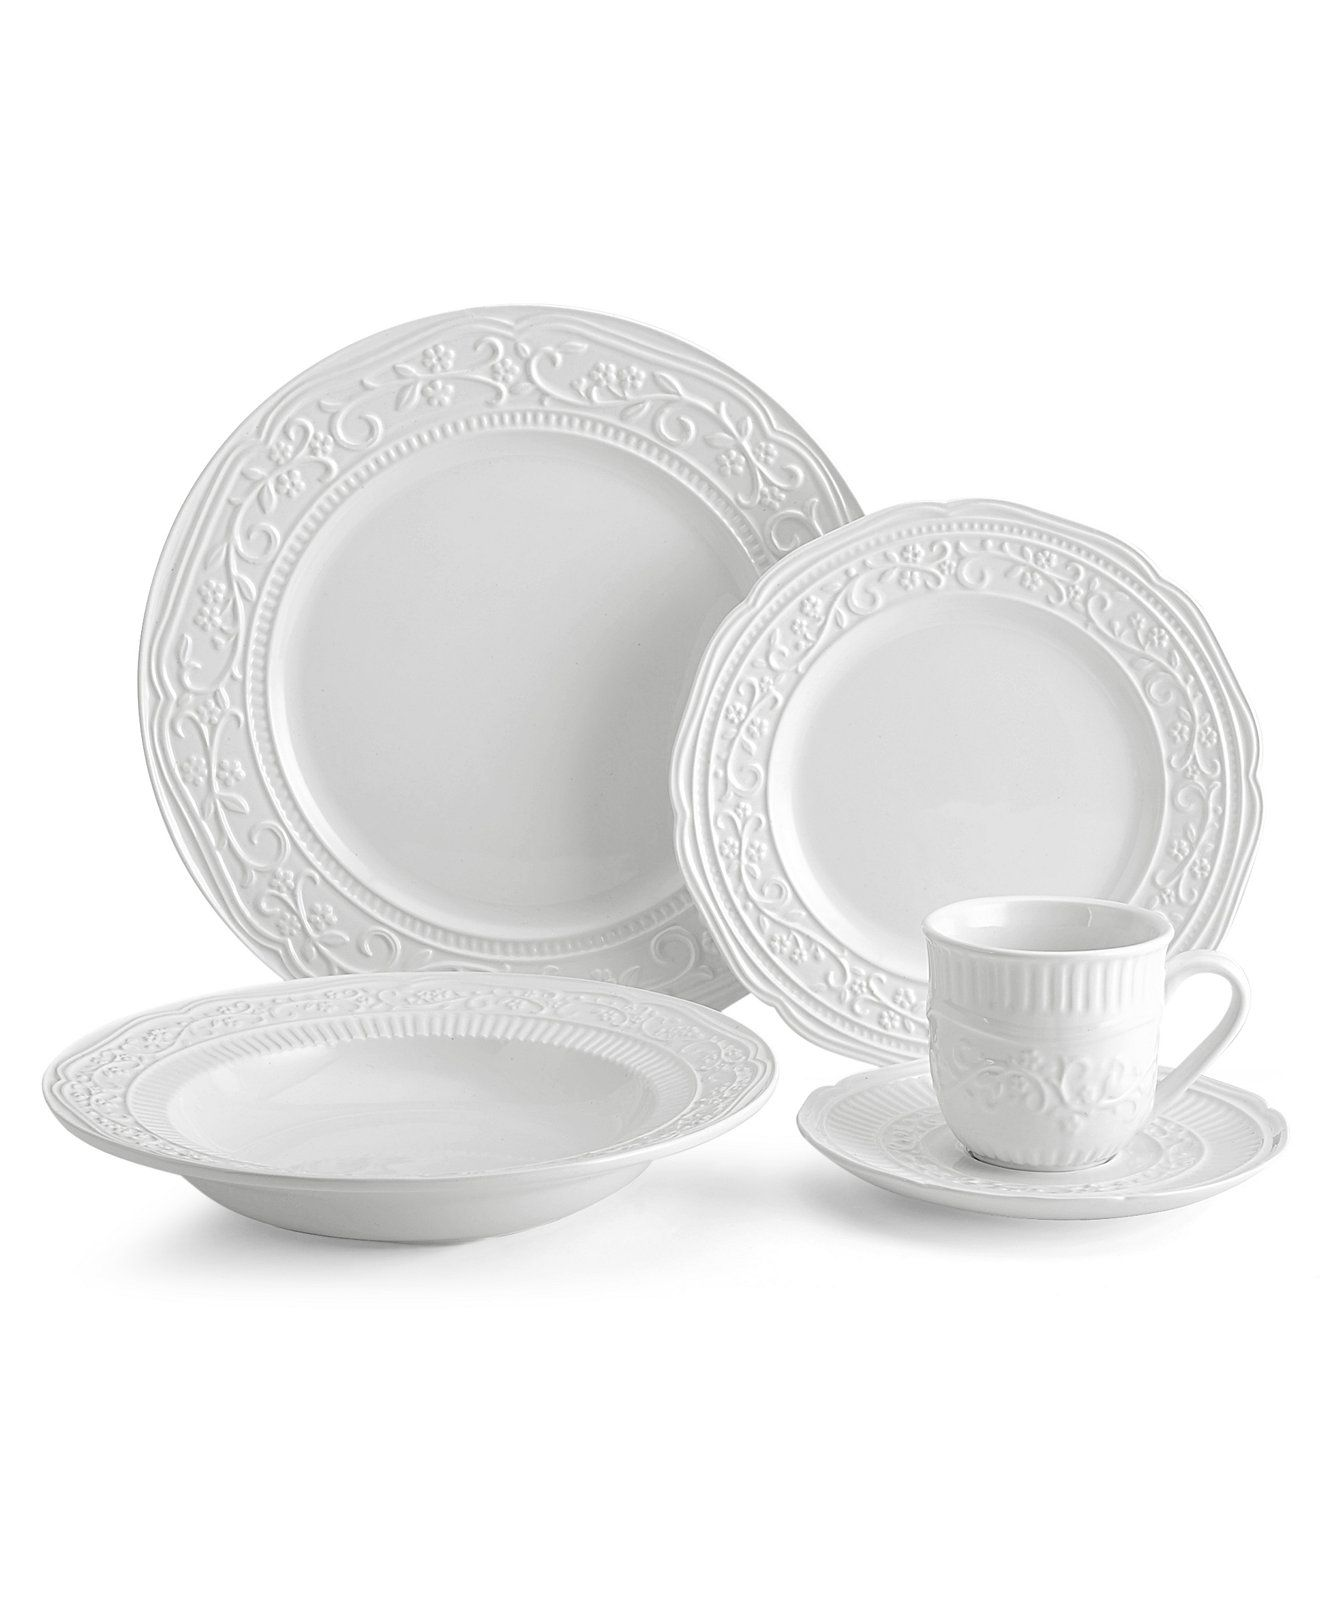 Mikasa Dinnerware American Countryside Collection - Casual Dinnerware - Dining u0026 Entertaining - Macyu0027s  sc 1 st  Pinterest & Mikasa Dinnerware American Countryside Collection | Mikasa White ...